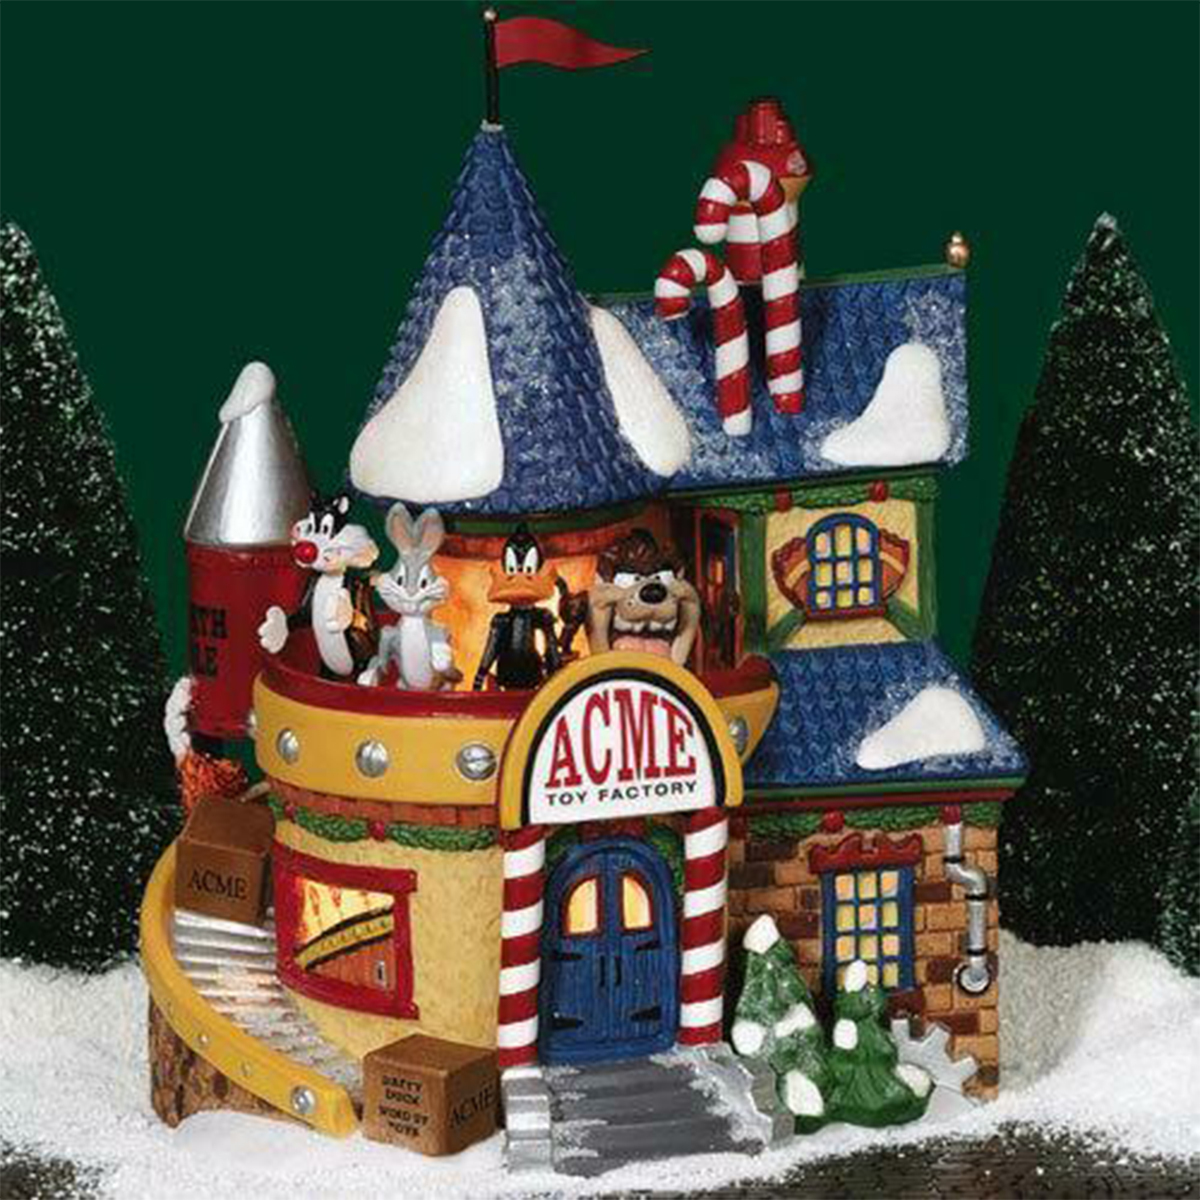 Primary image for Dept 56 ACME Toy Factory - Part of North Pole Series #56.56729 Retired